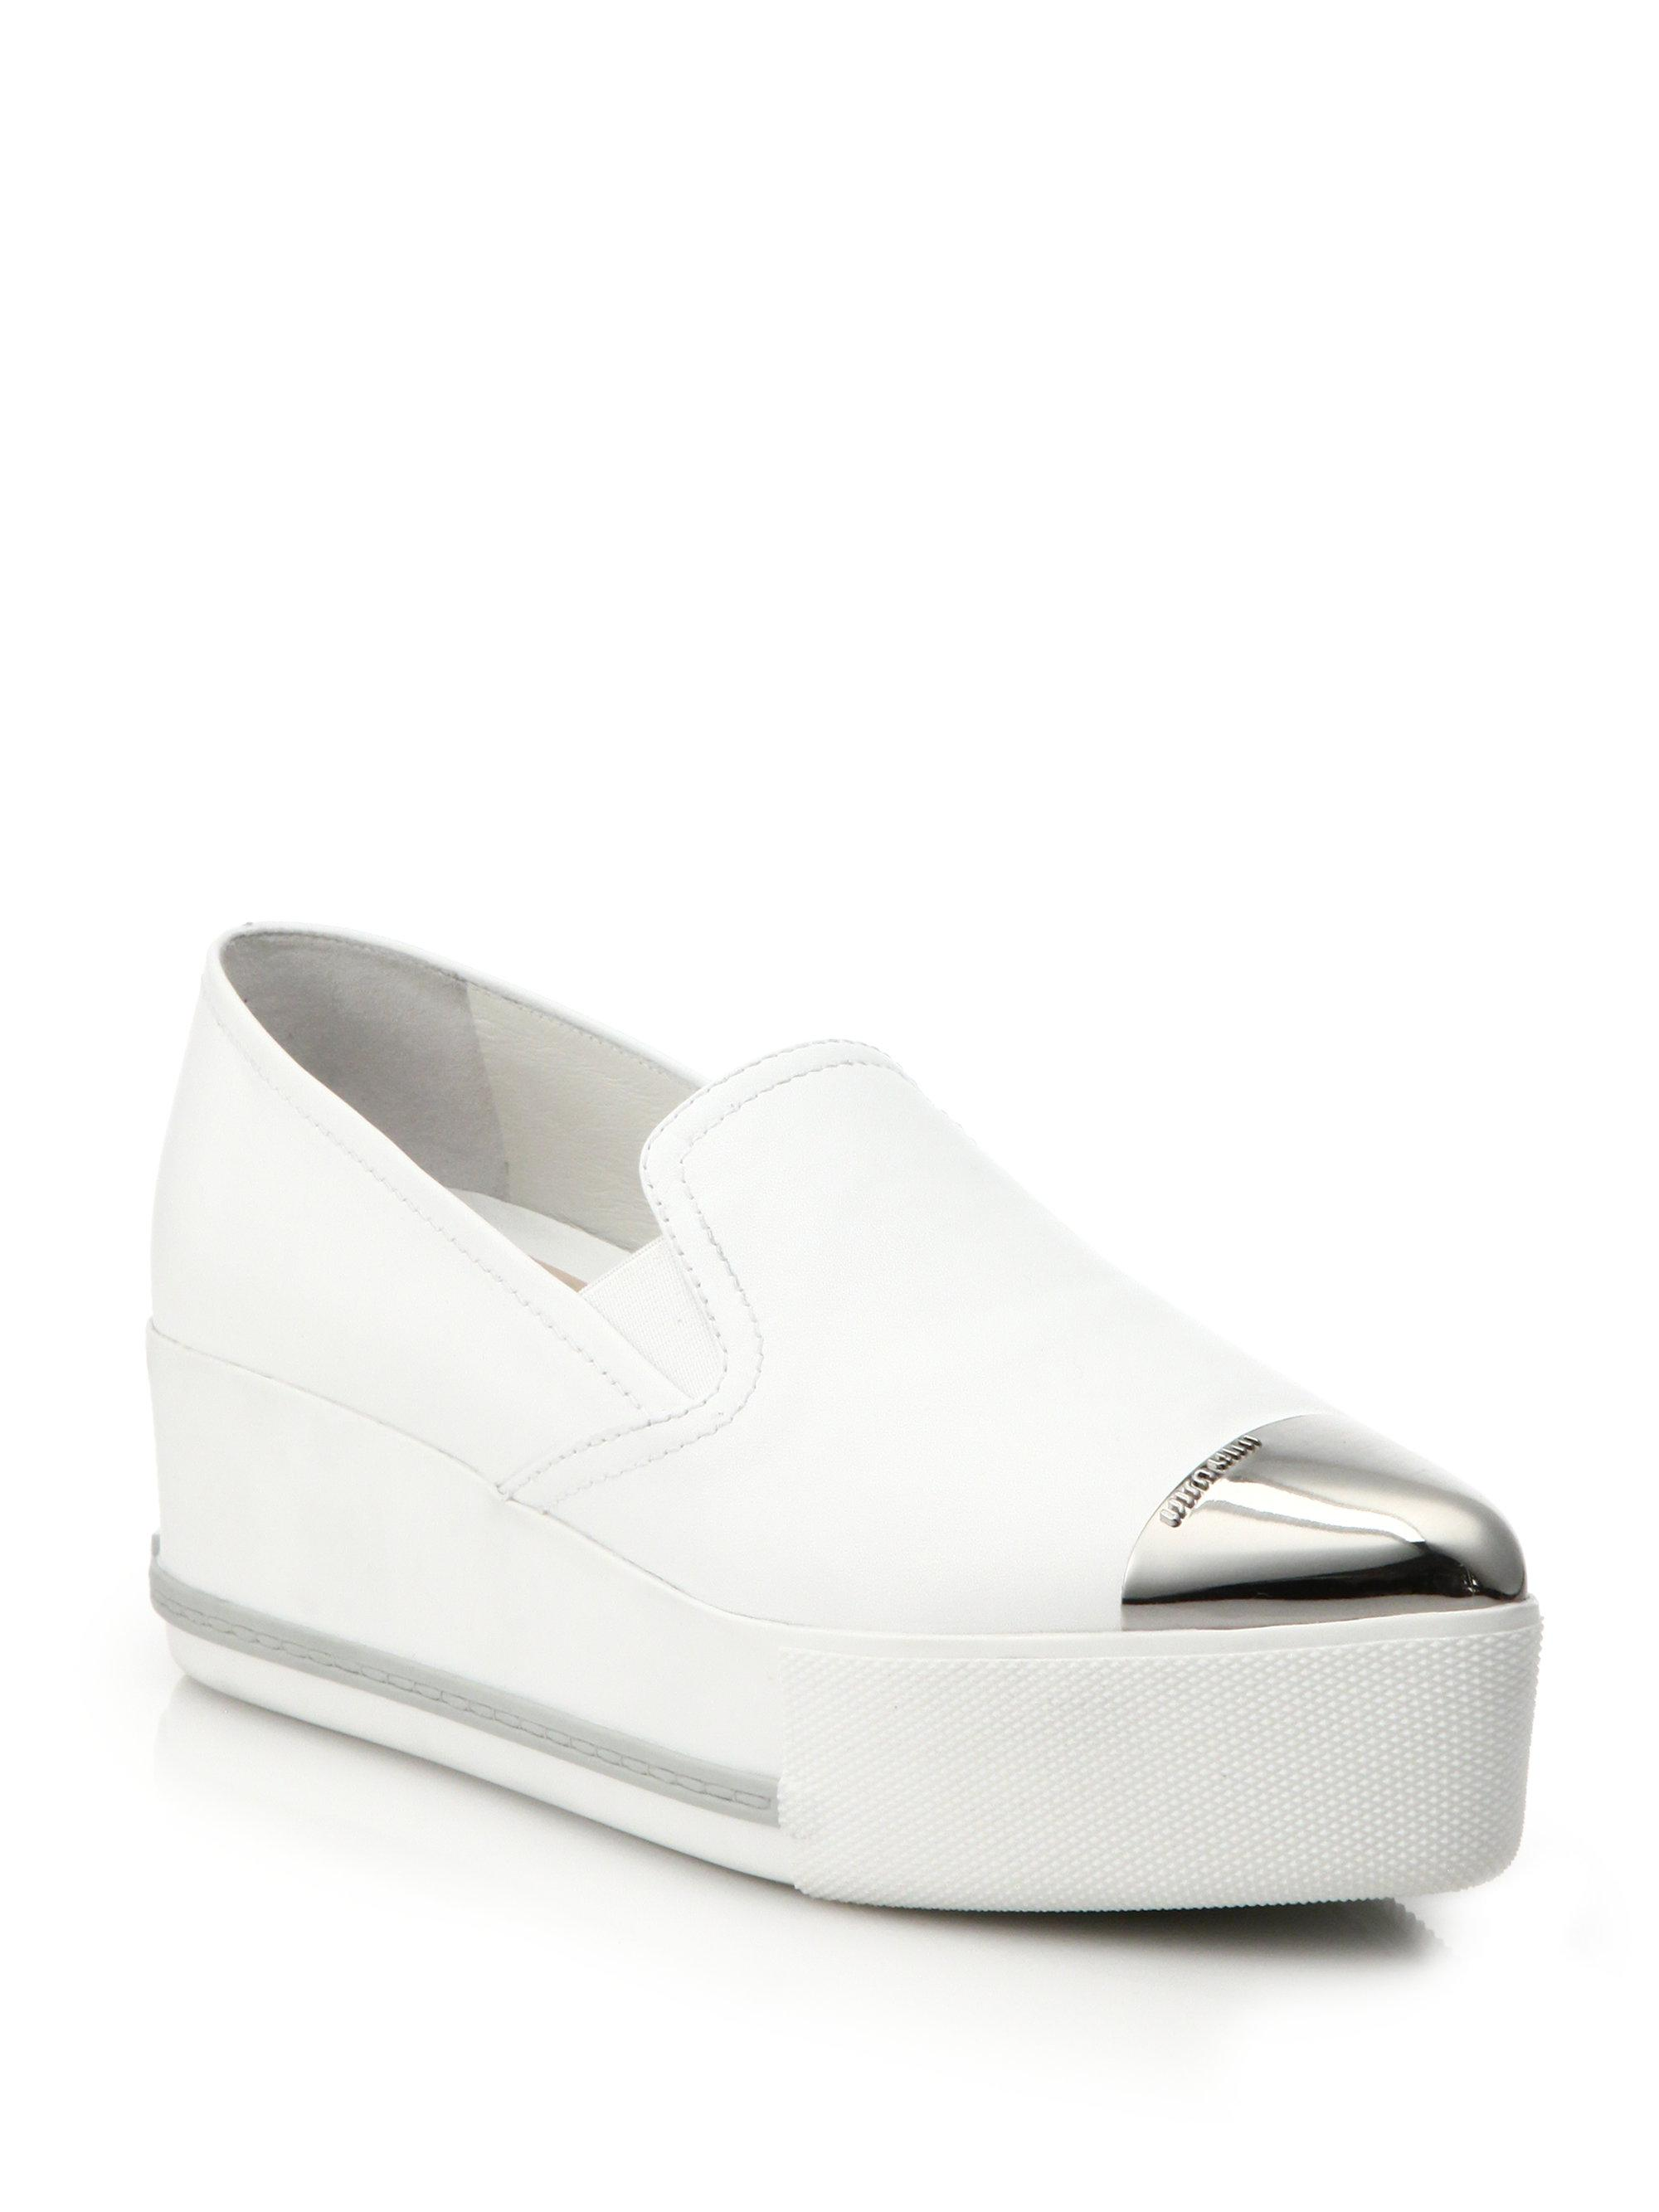 Miu Miu. Women's White Cap Toe Leather Platform Skate Sneakers